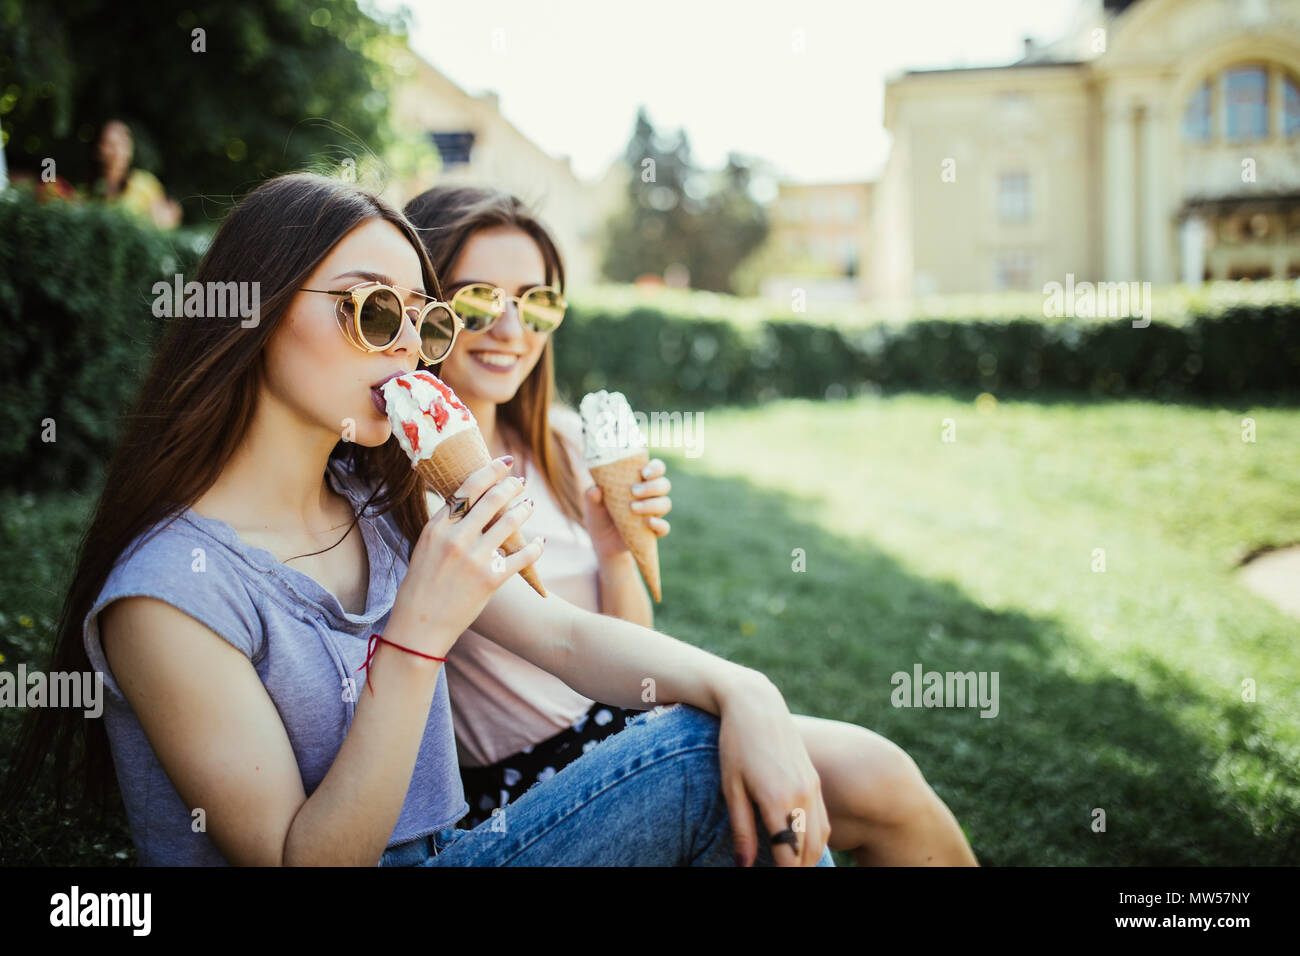 Young two women friends eat ice cream sitting on the grass in city streets - Stock Image